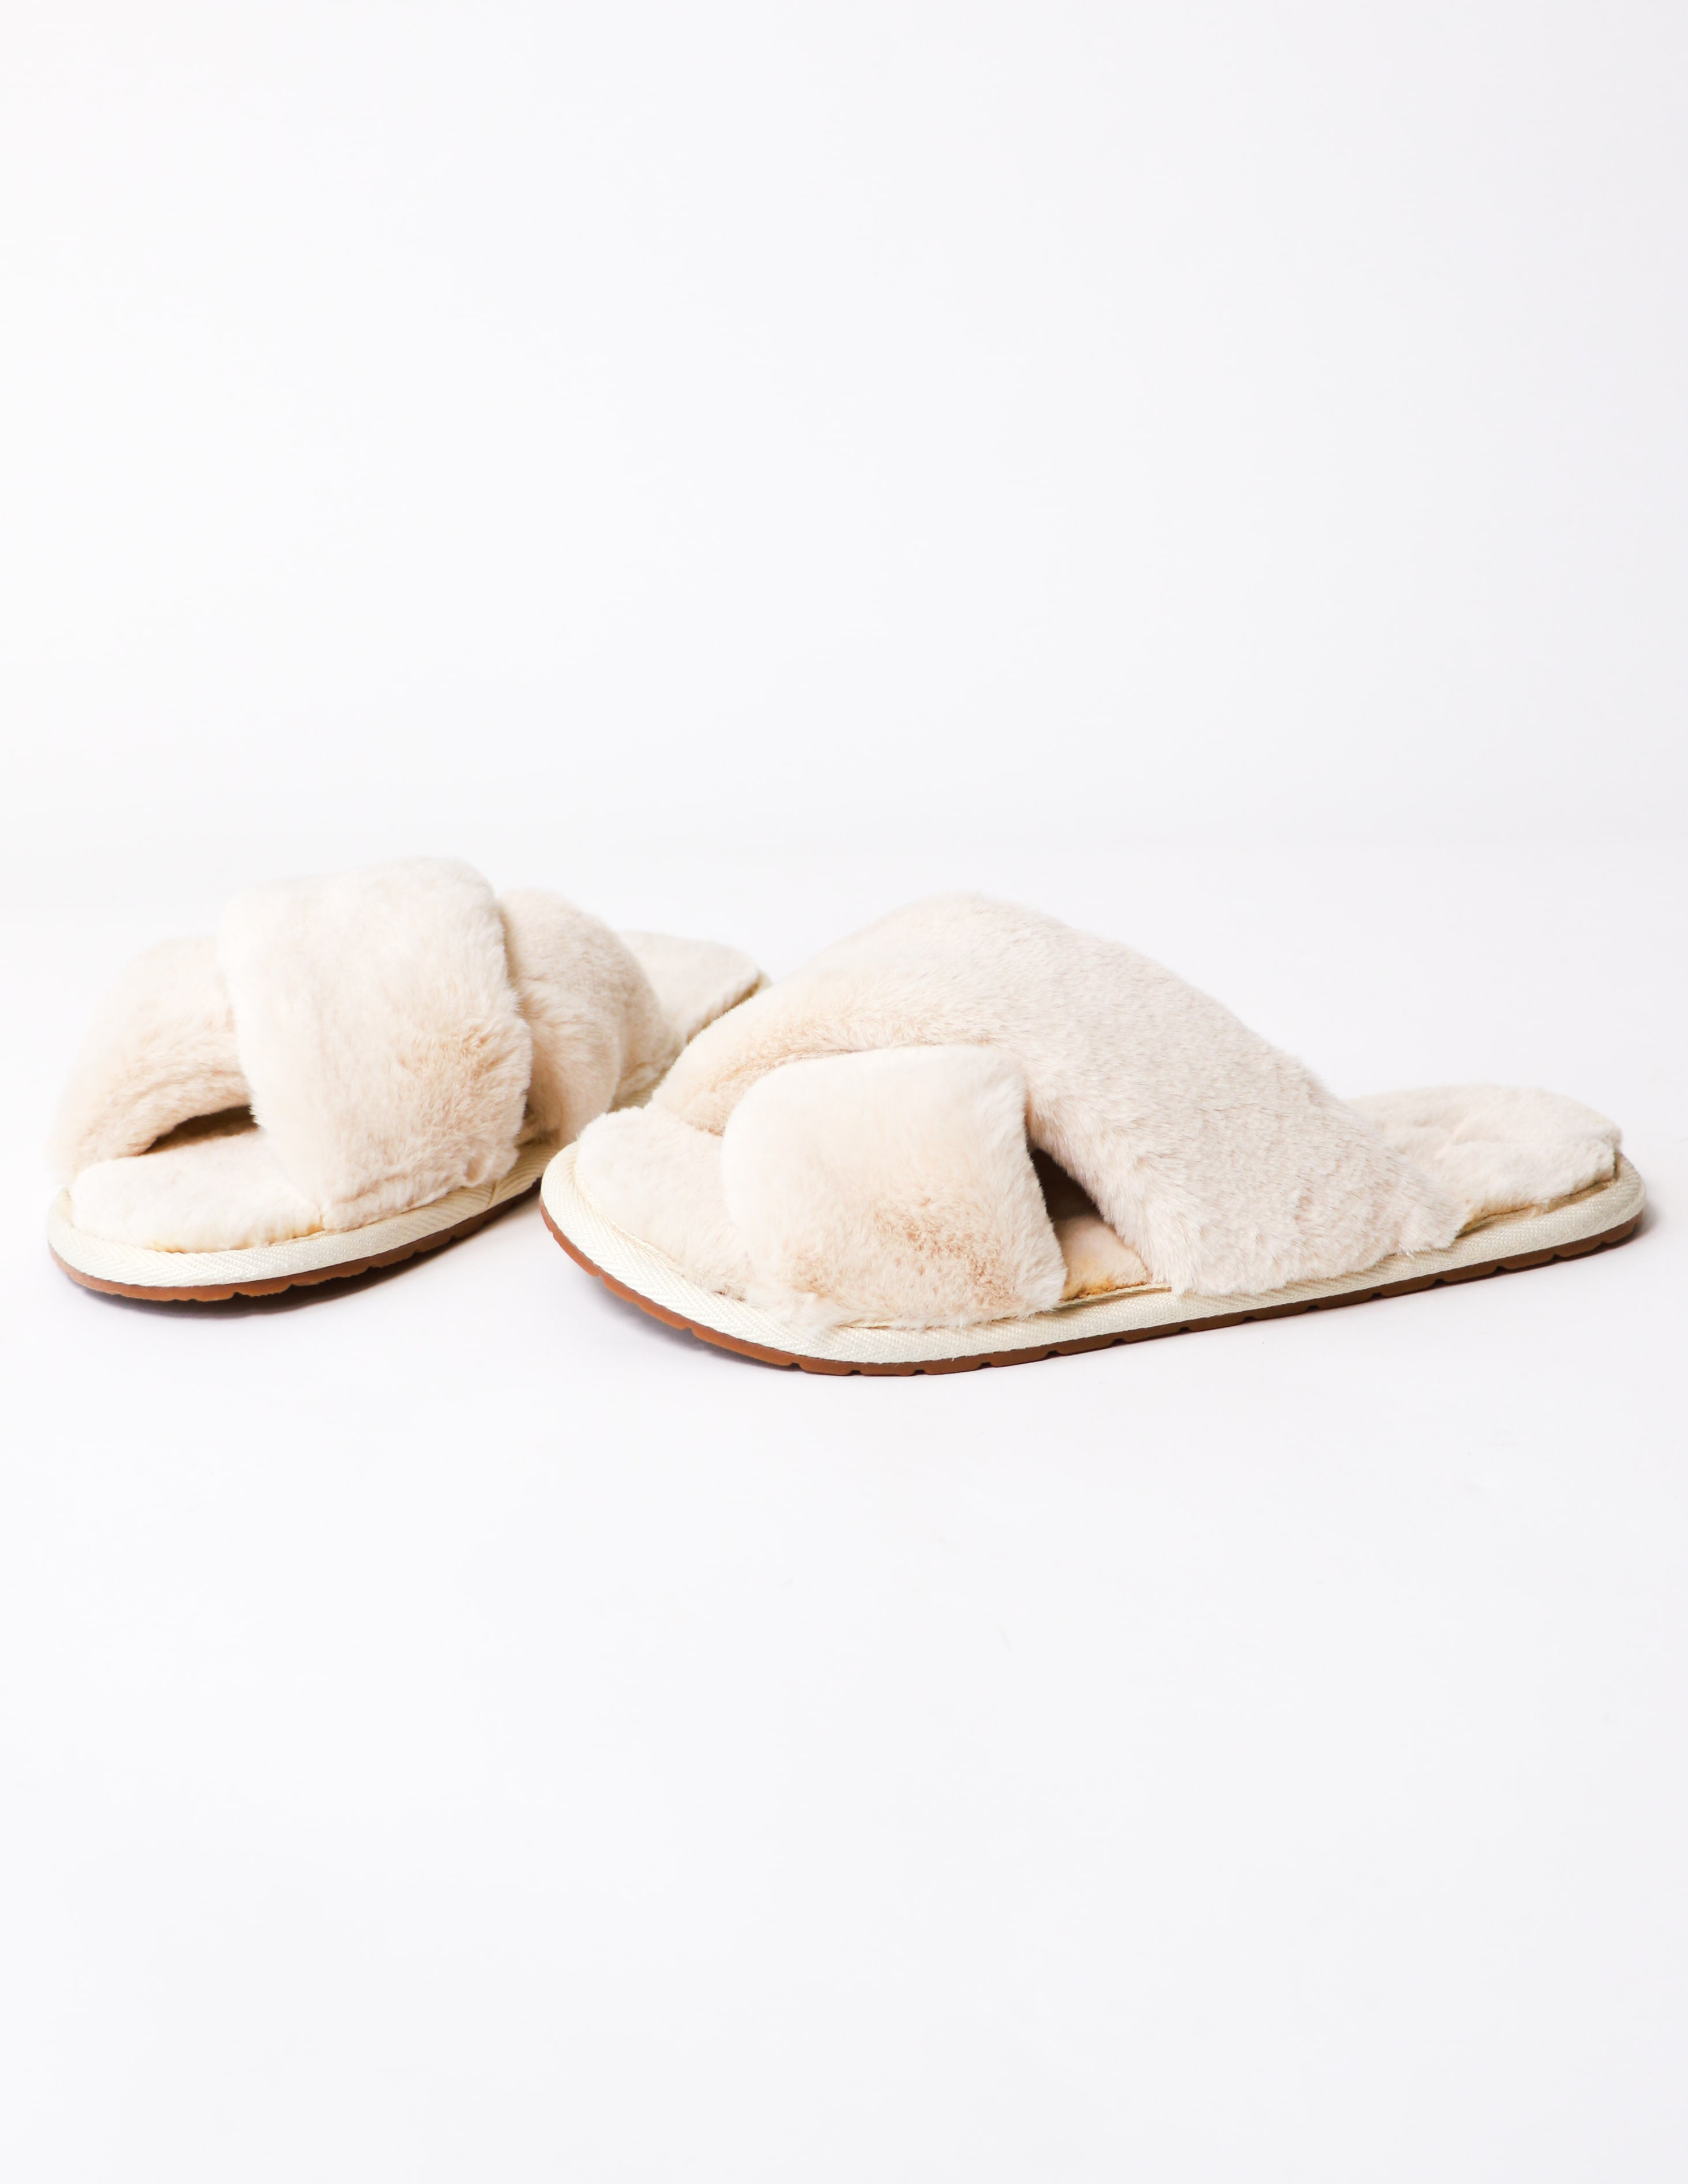 Fur the dreamers slipper in beige with criss cross straps and rubber sole